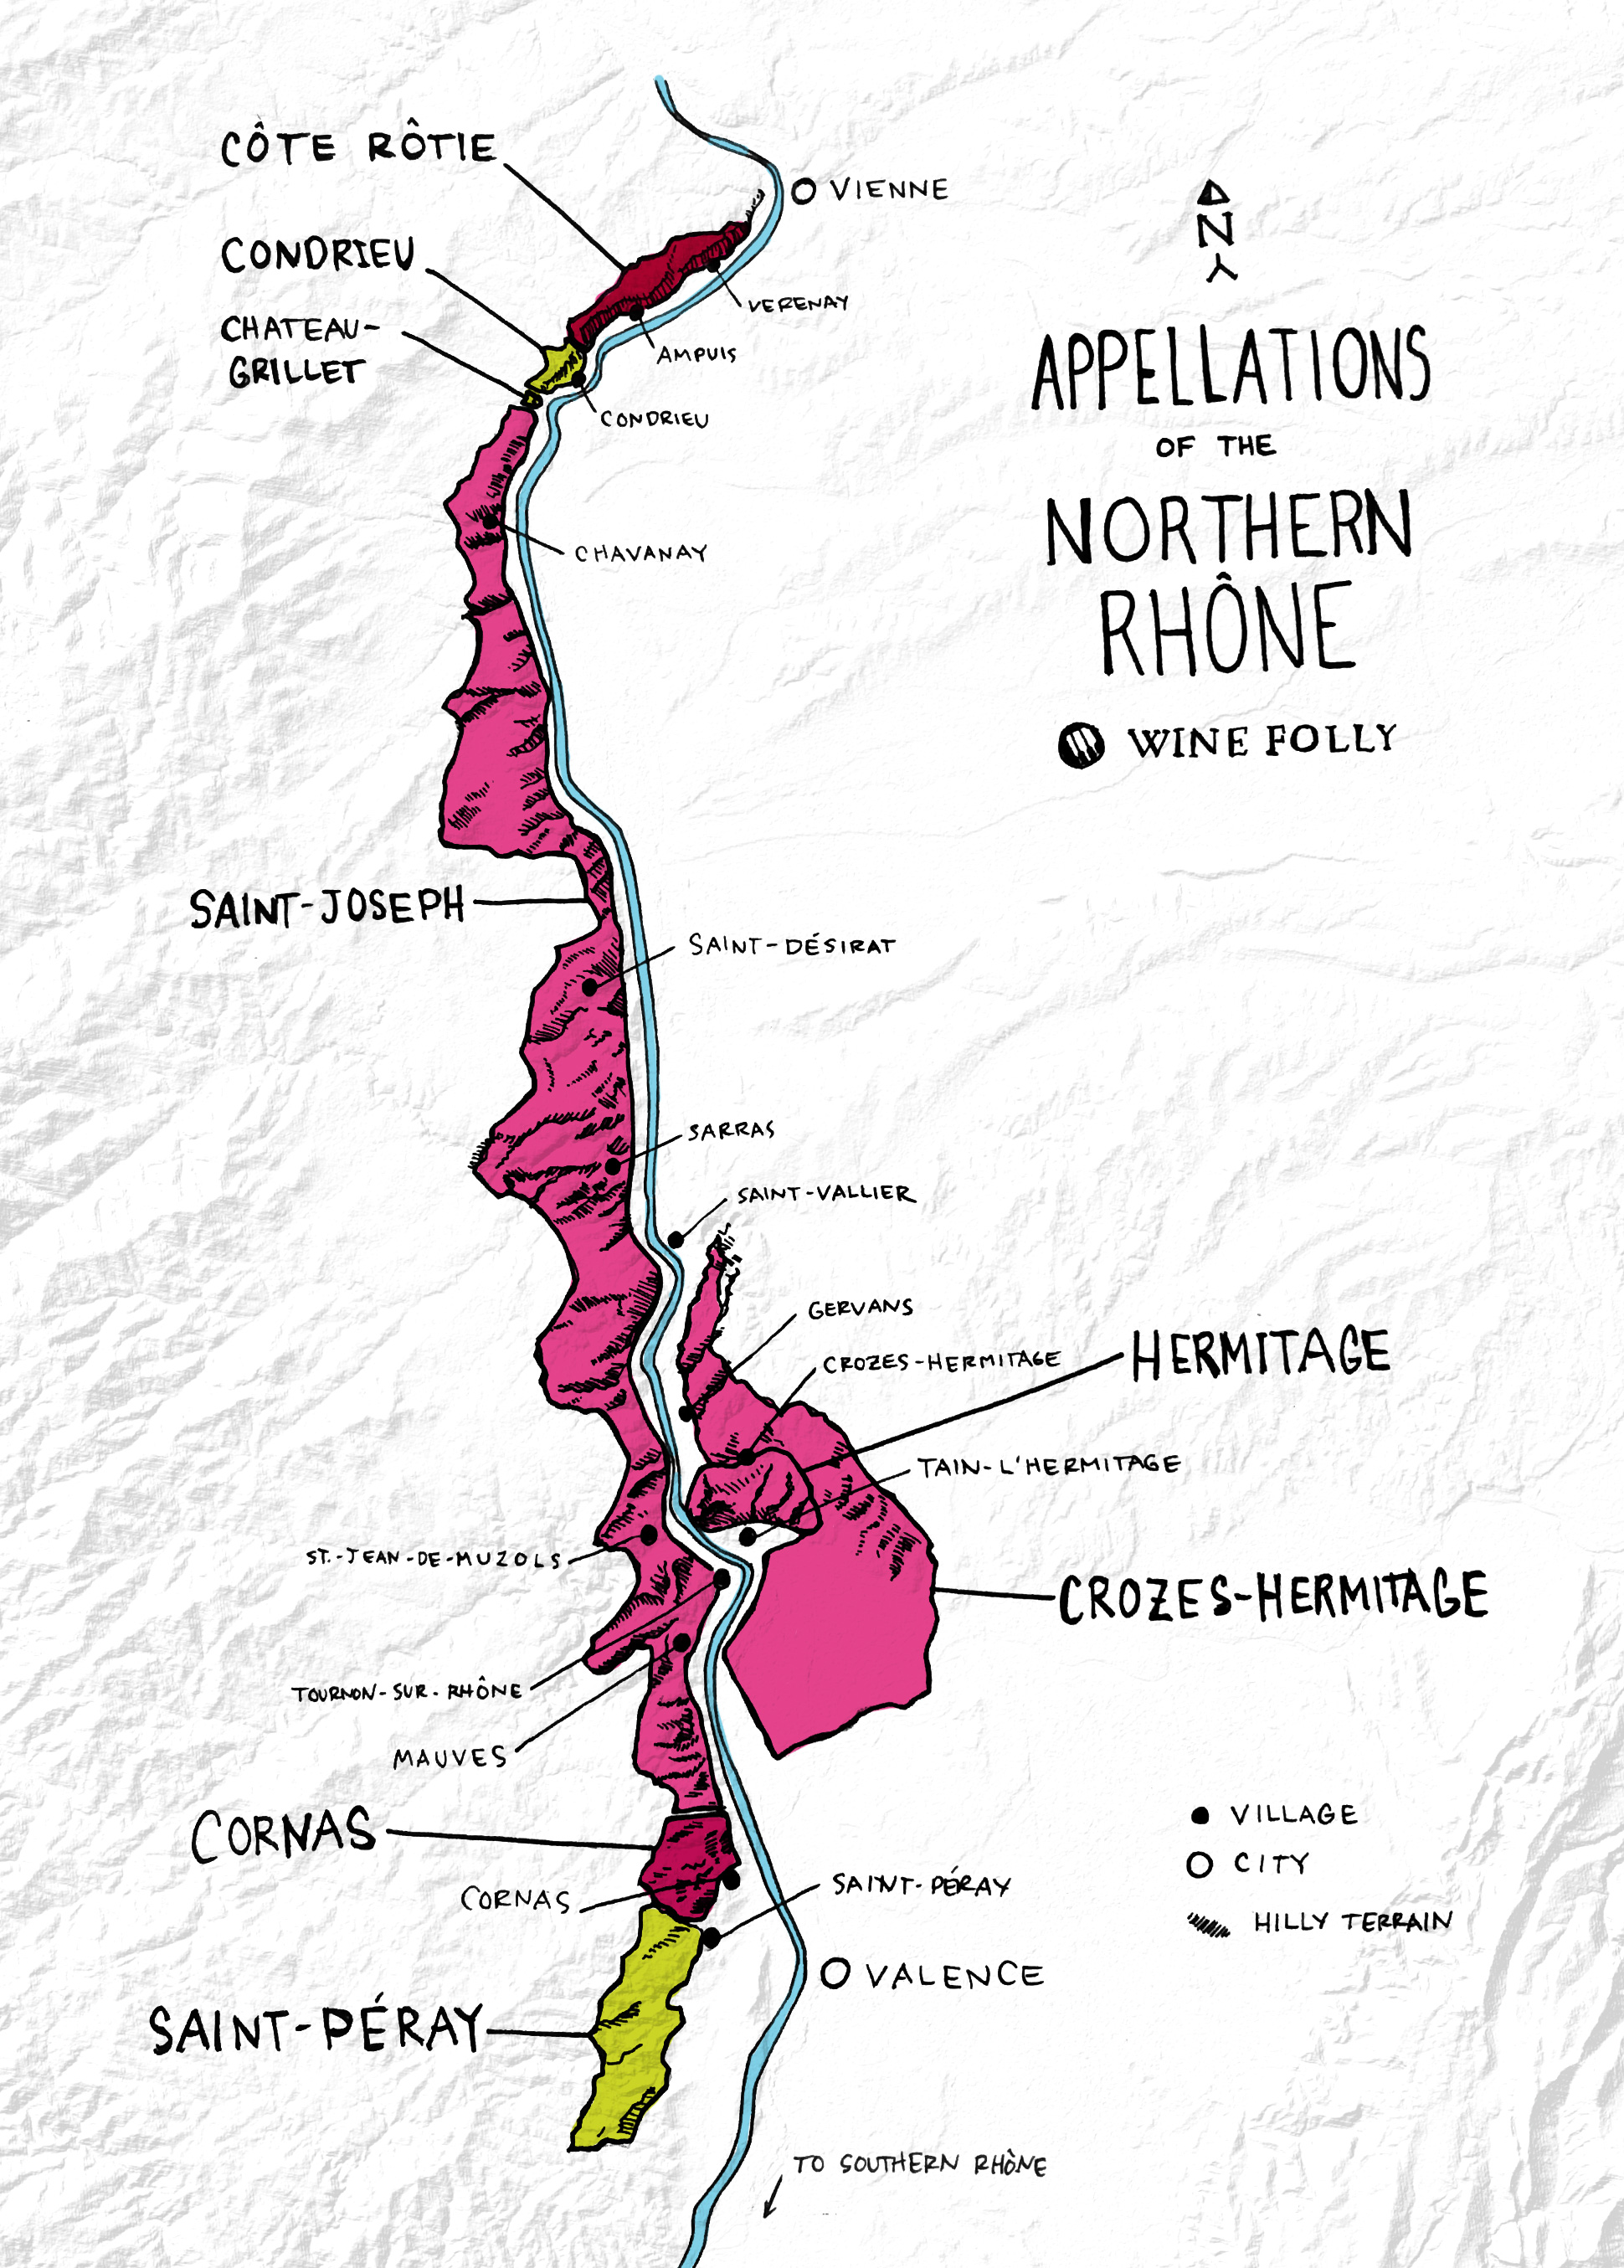 Appellations and wines of the Northern Rhone Map by Wine Folly